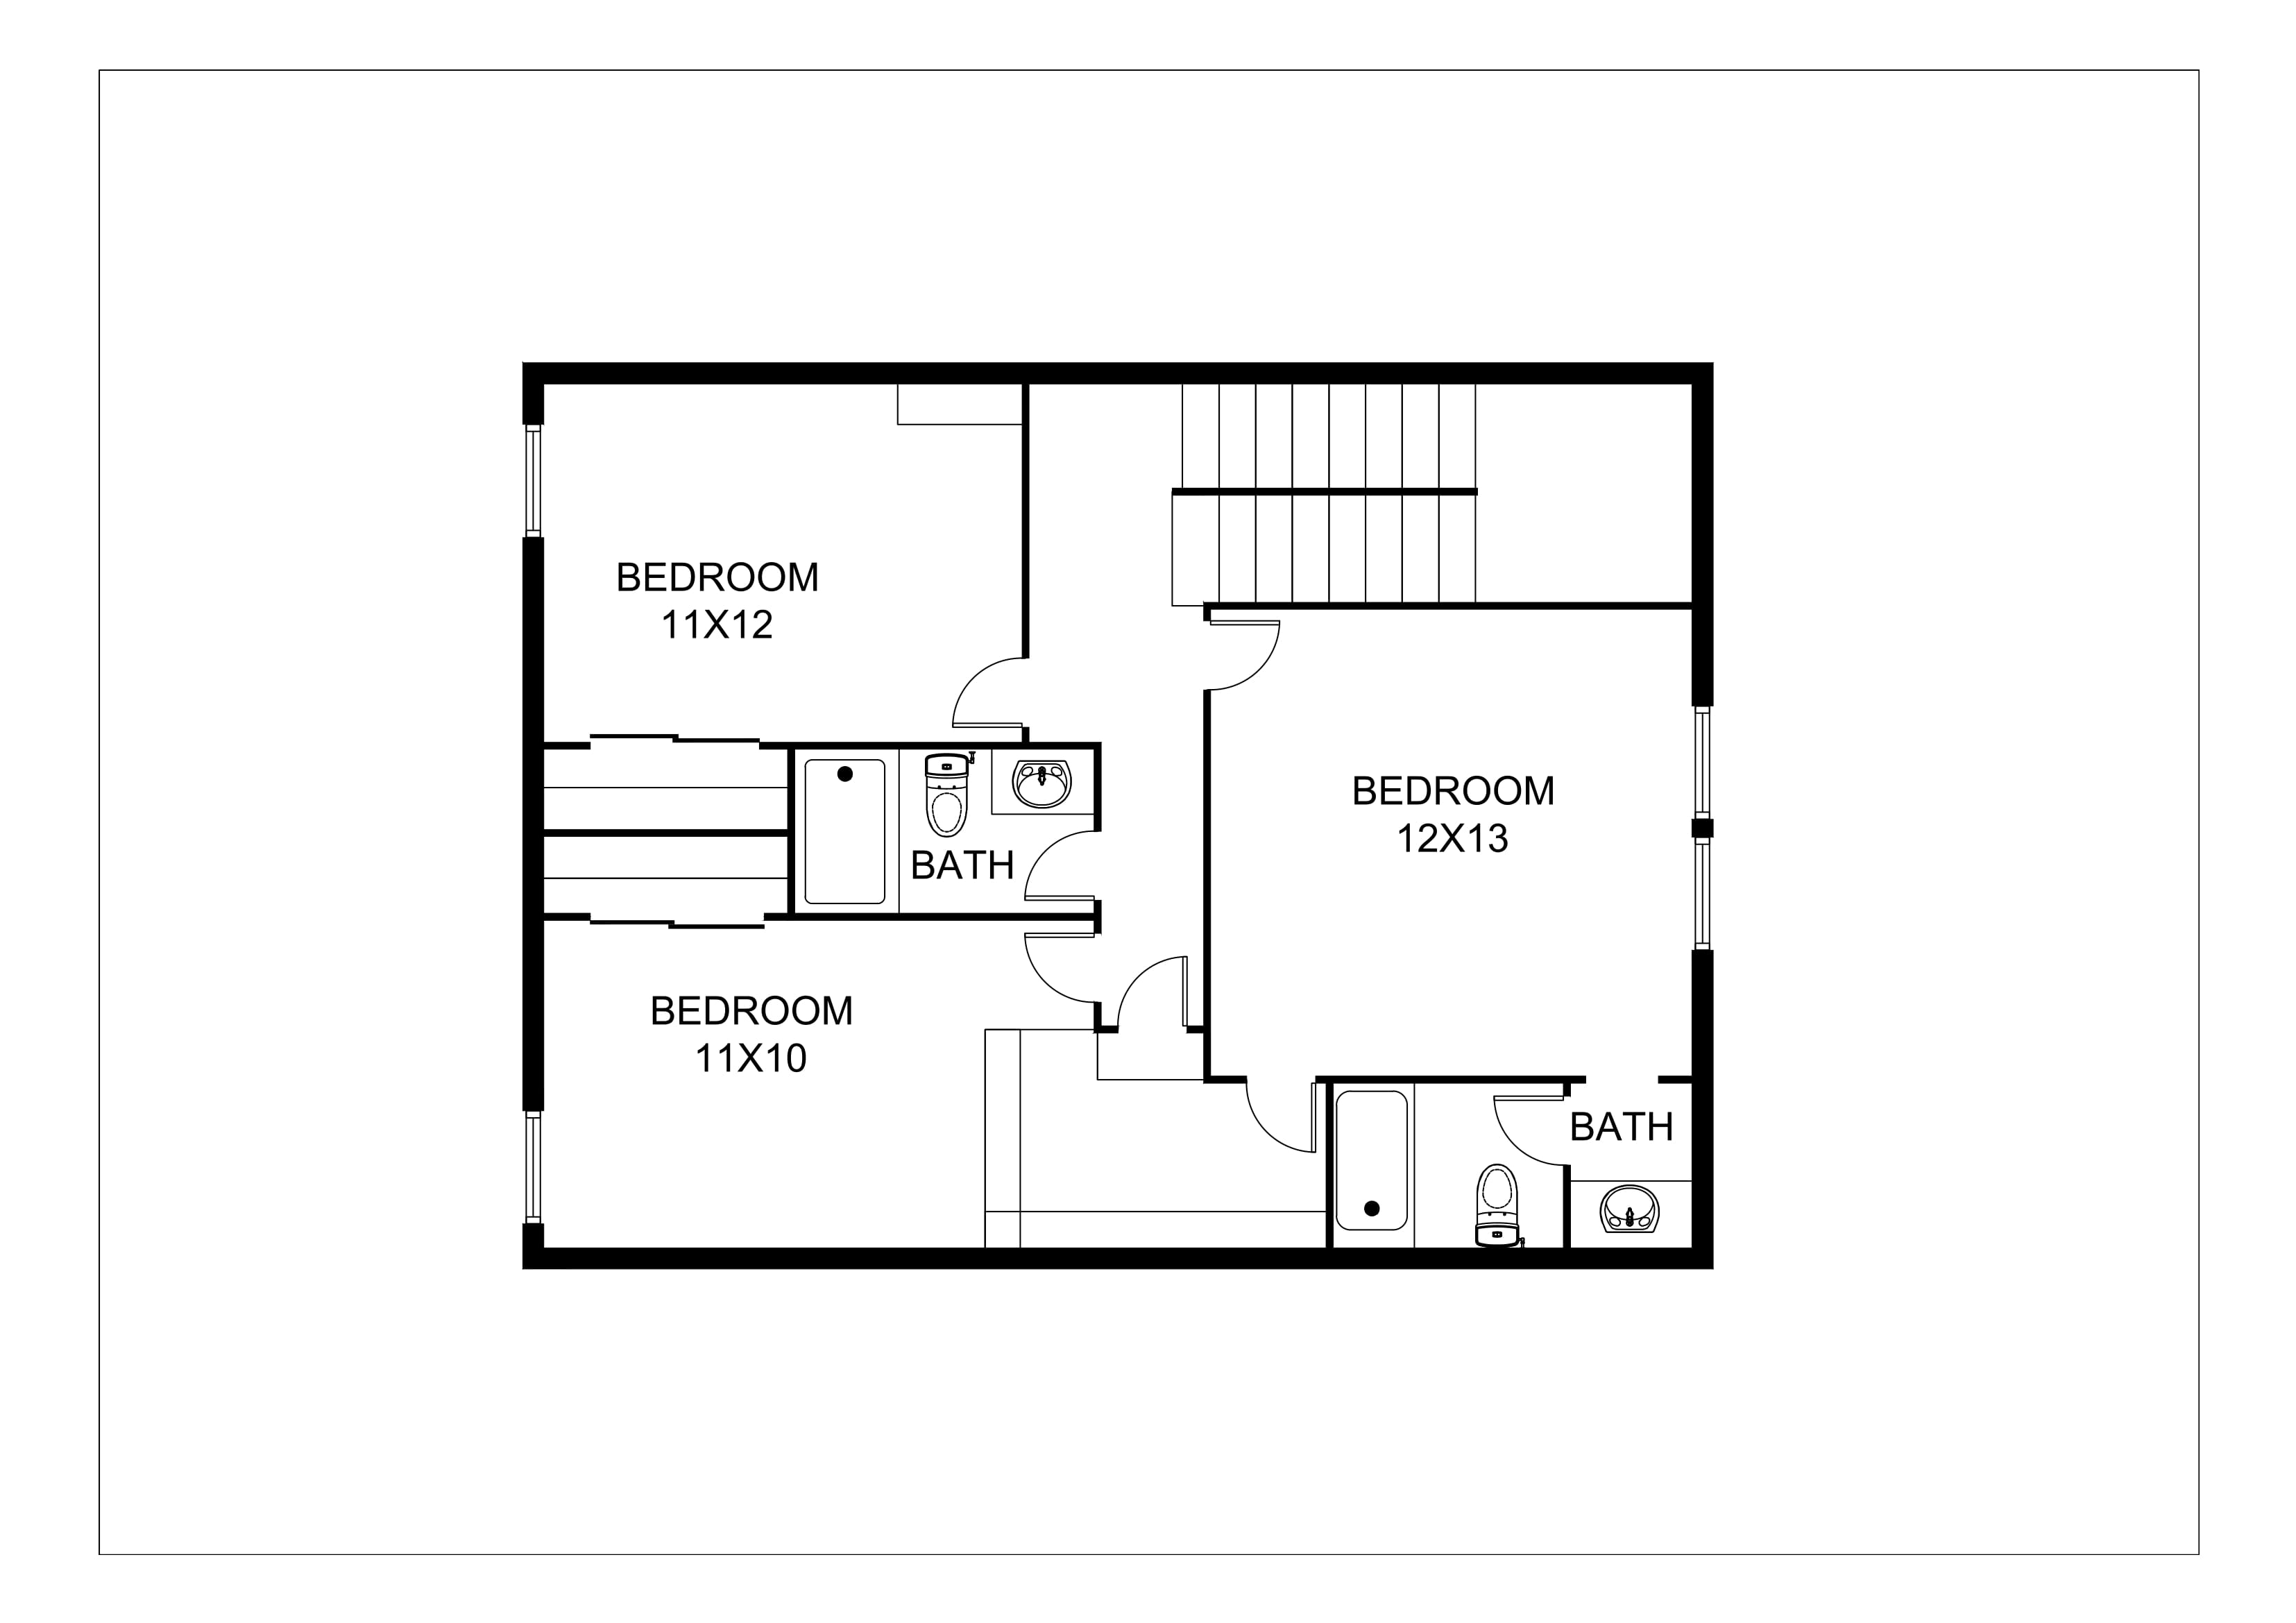 Real Estate 2D Floor Plans – Design / Rendering